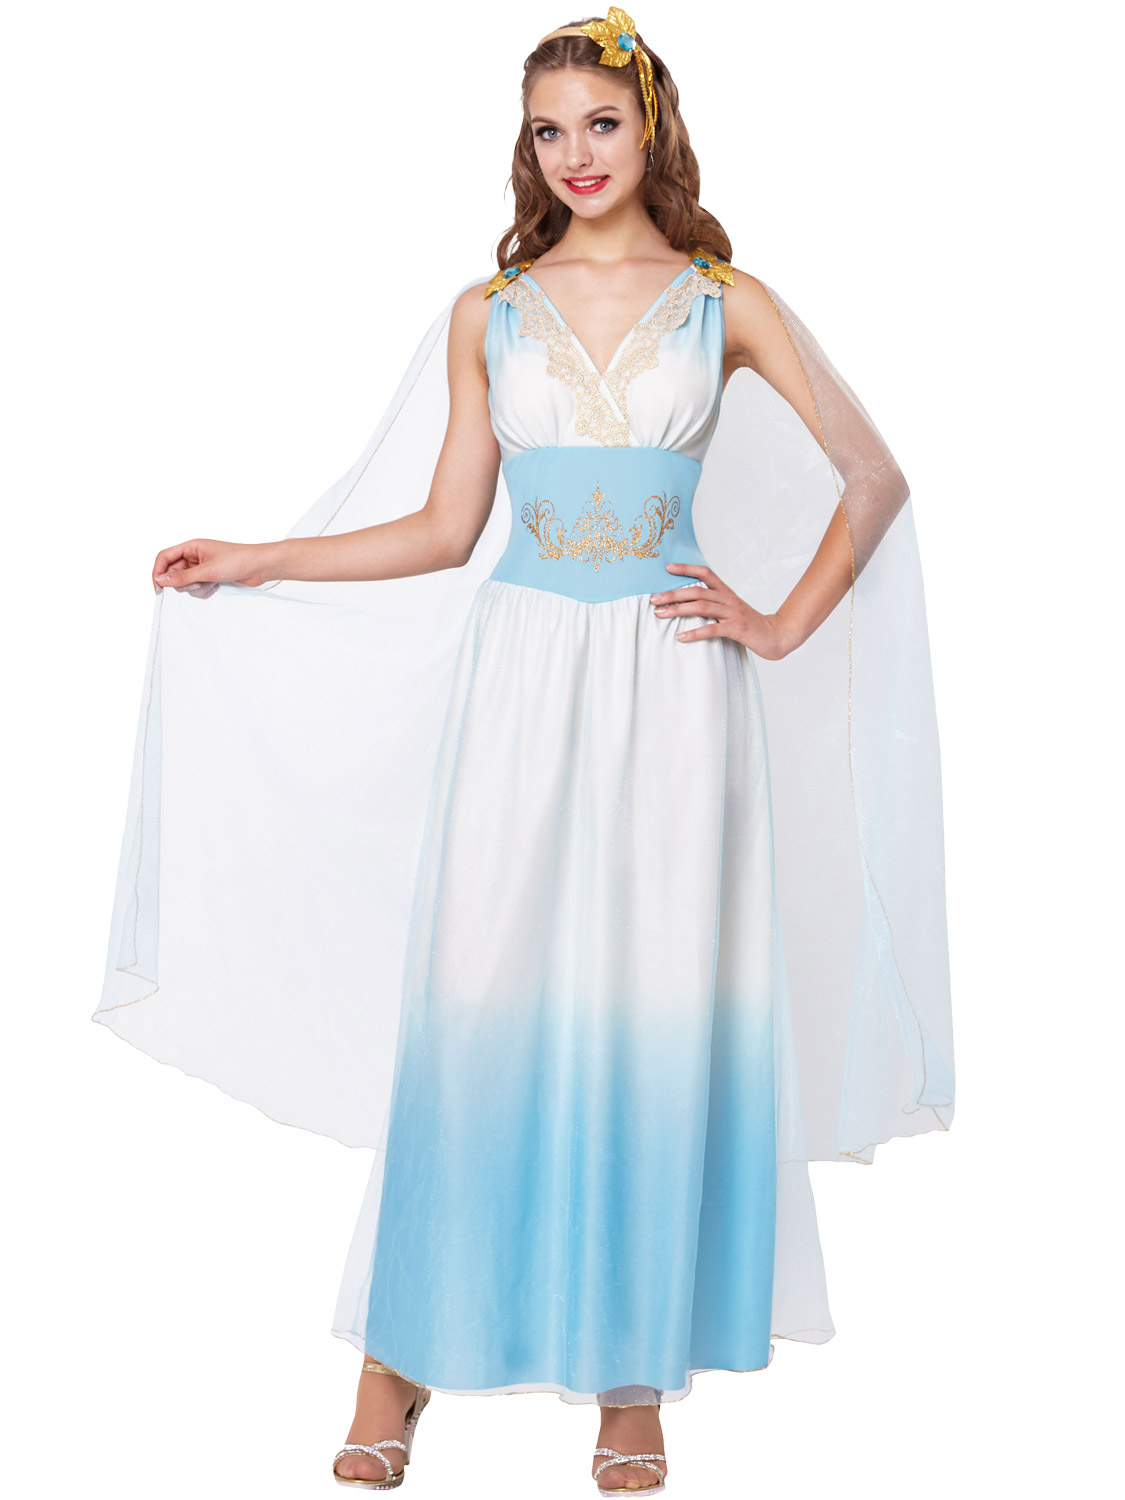 5039cfabaf5 Details about Ladies Roman Empress Costume Greek Woman Goddess Ancient Toga Fancy  Dress Outfit